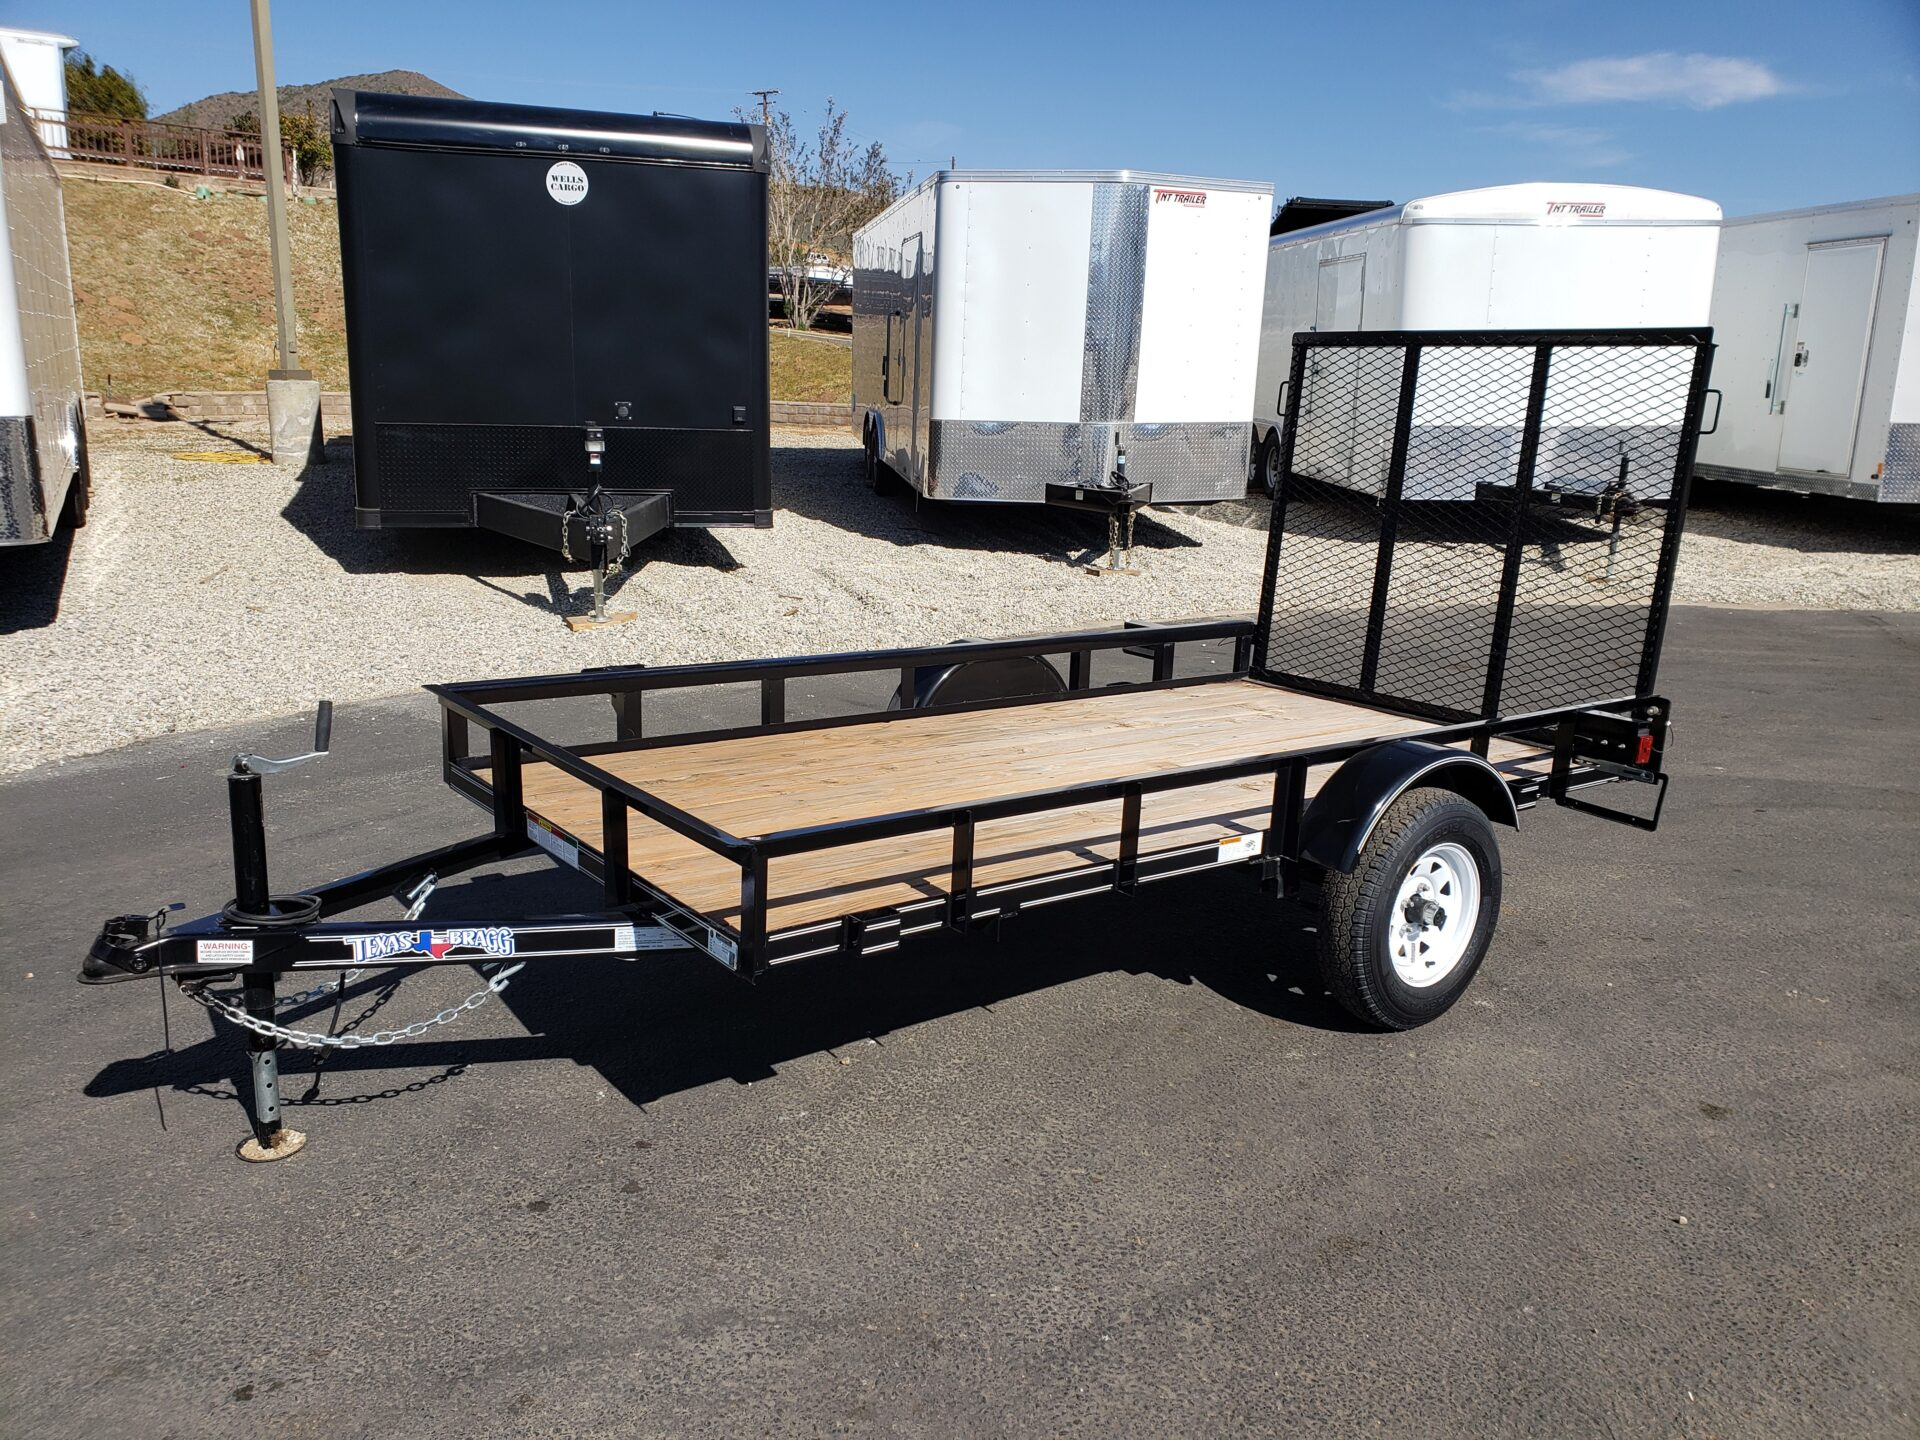 Texas Bragg 5x10LB Ramp - Driver side front 3/4 view